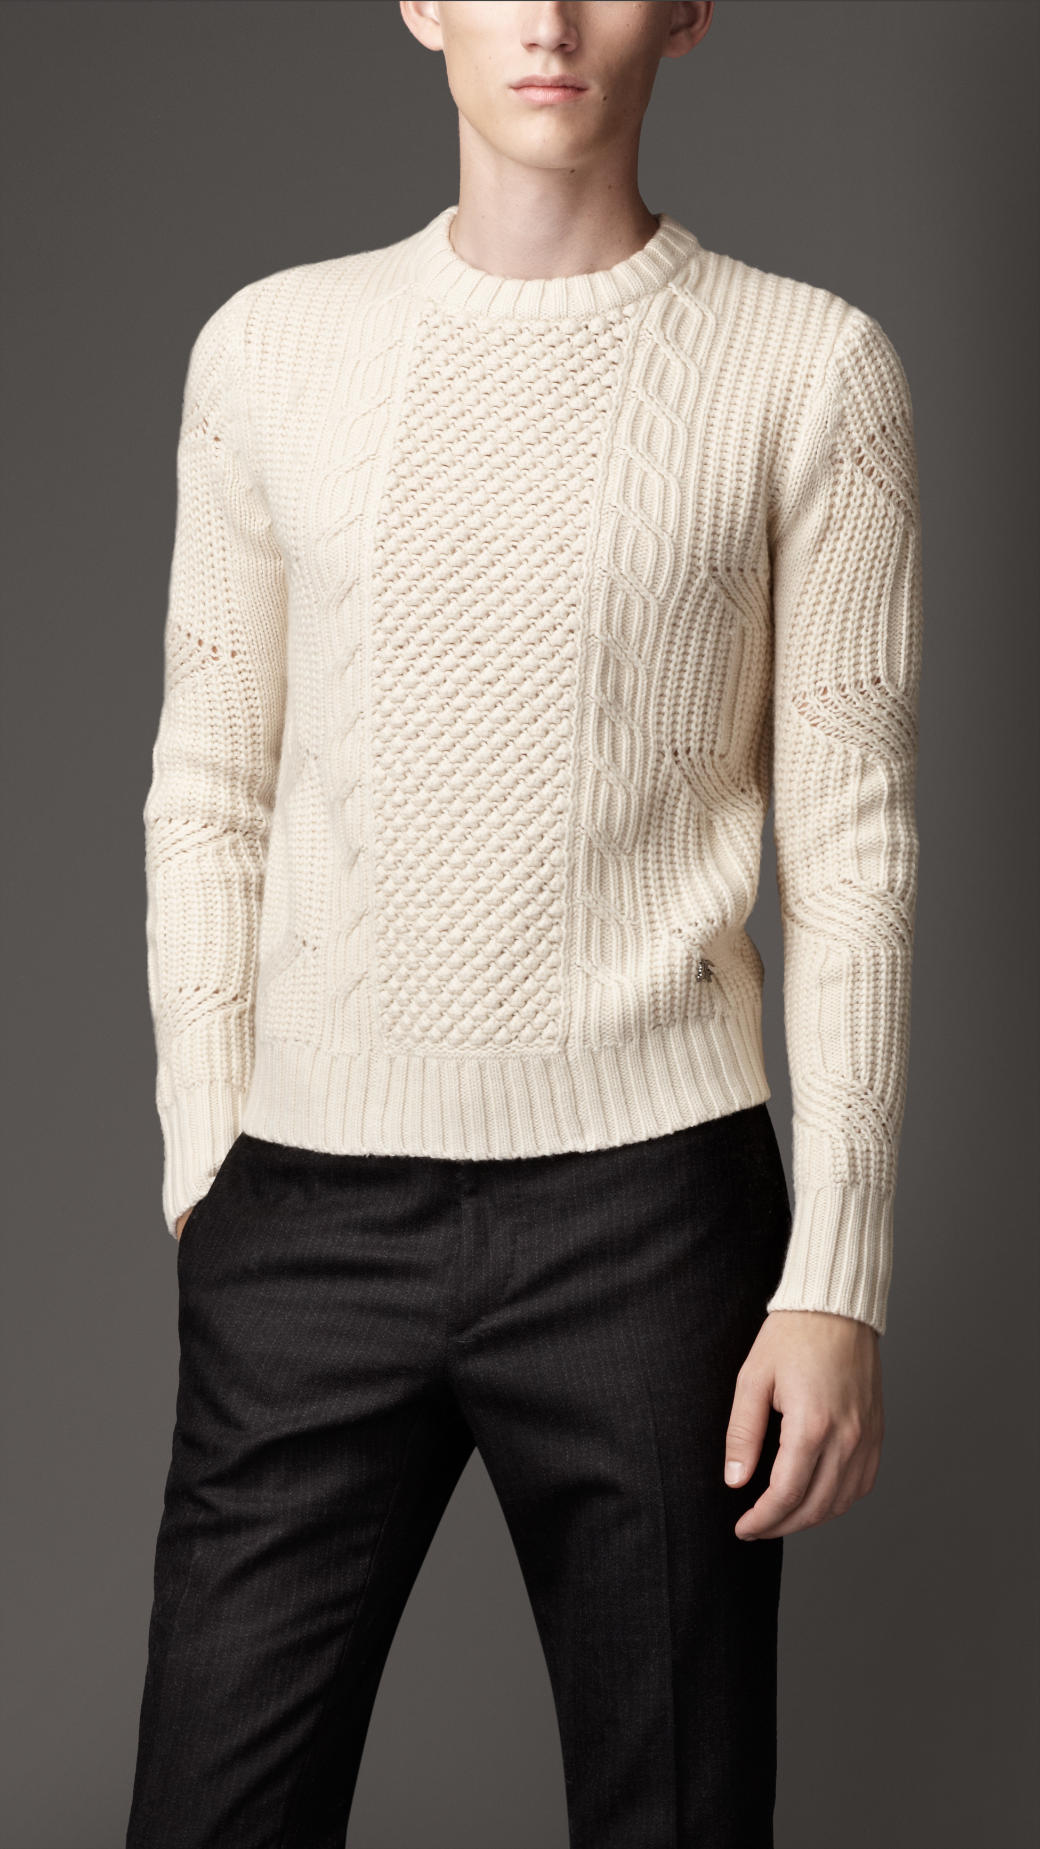 Burberry Aran Knit Cashmere Sweater In Natural White